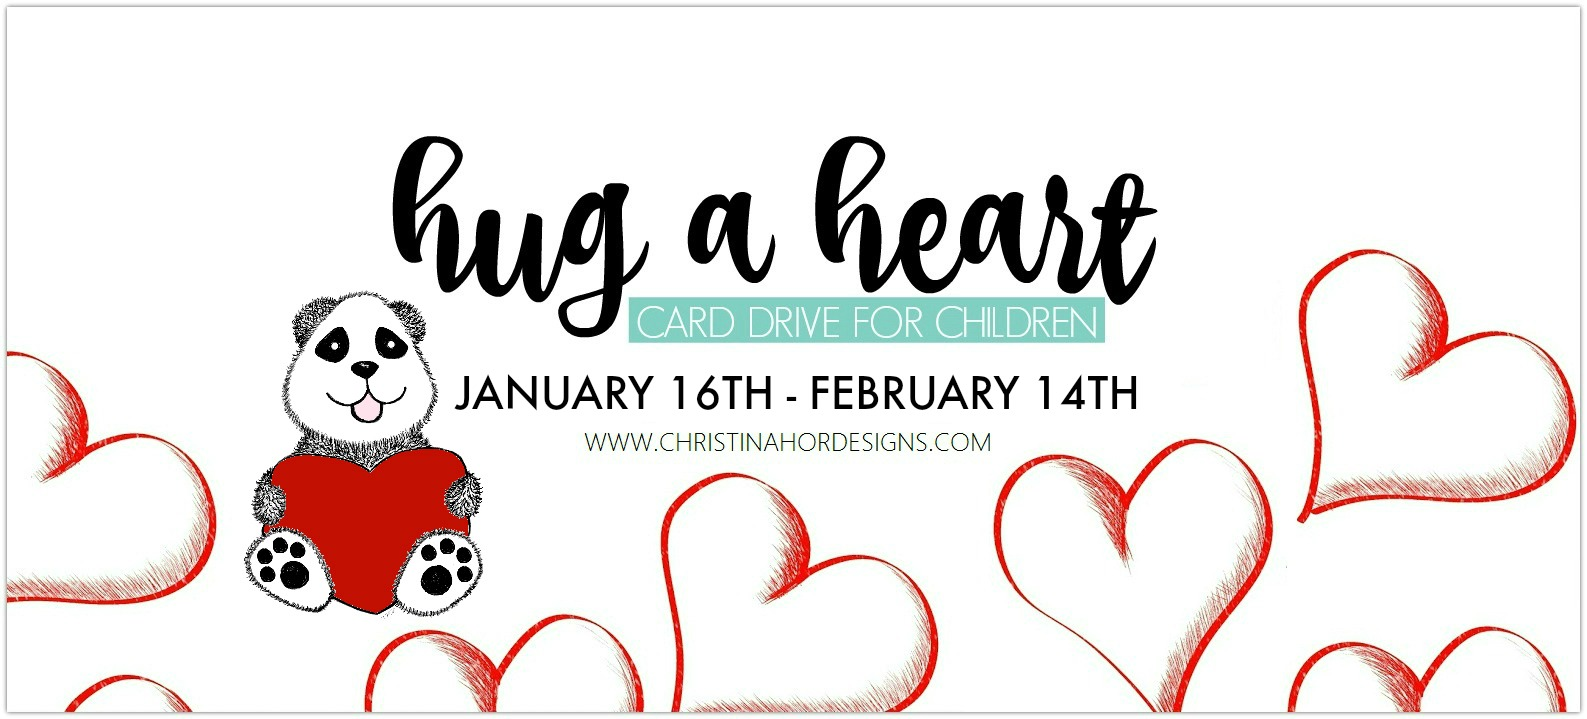 Hug a Heart Card Drive